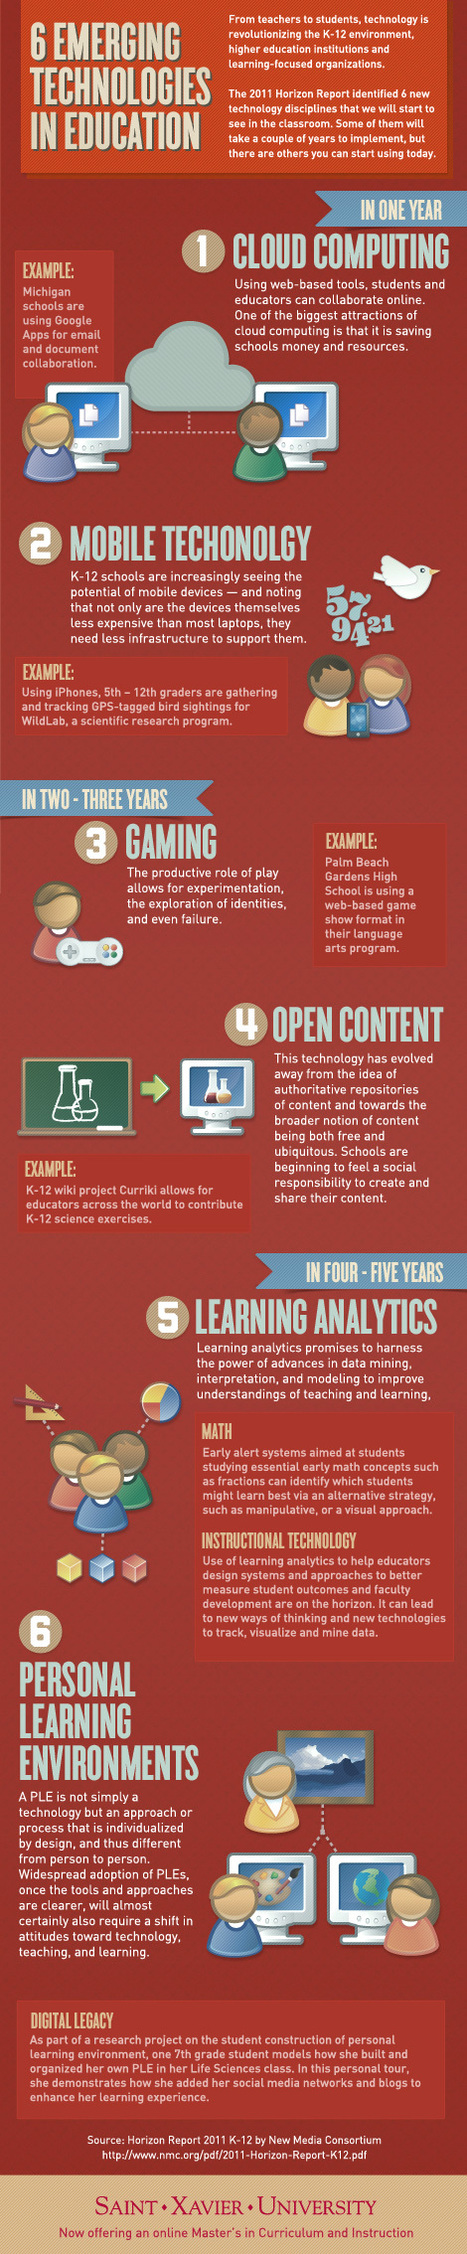 6 Emerging Technologies In Education [Infographic] | Course Technology | Scoop.it